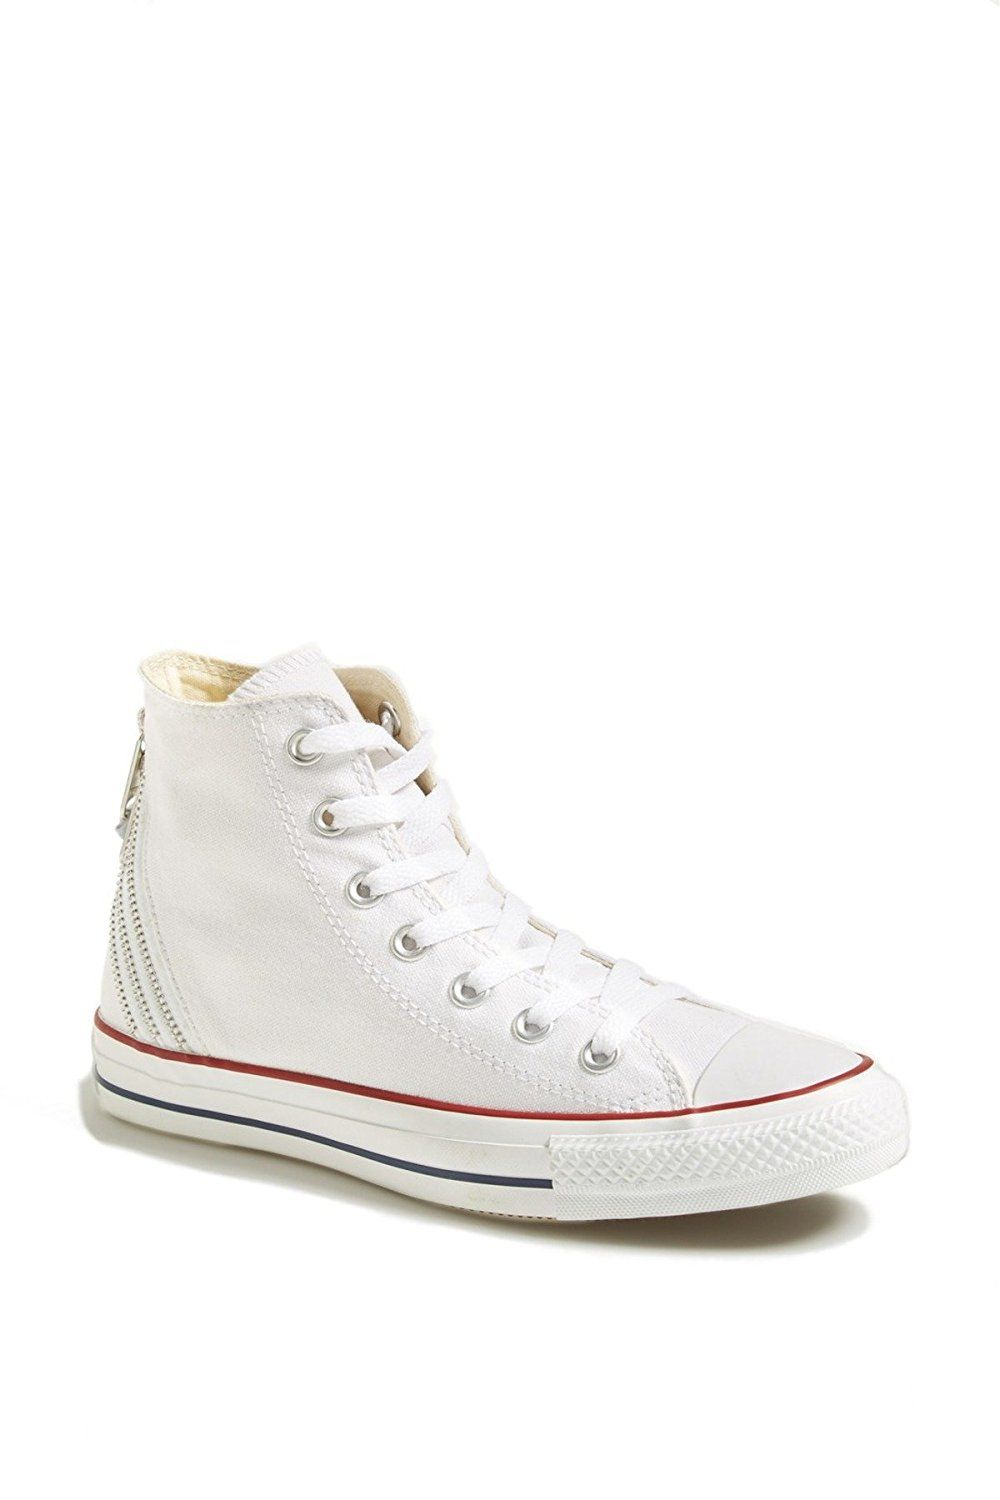 77826b9fc442 Converse Women s Chuck Taylor Triple Zip Hi Basketball Shoes   Unbelievable  item right here!   Basketball shoes